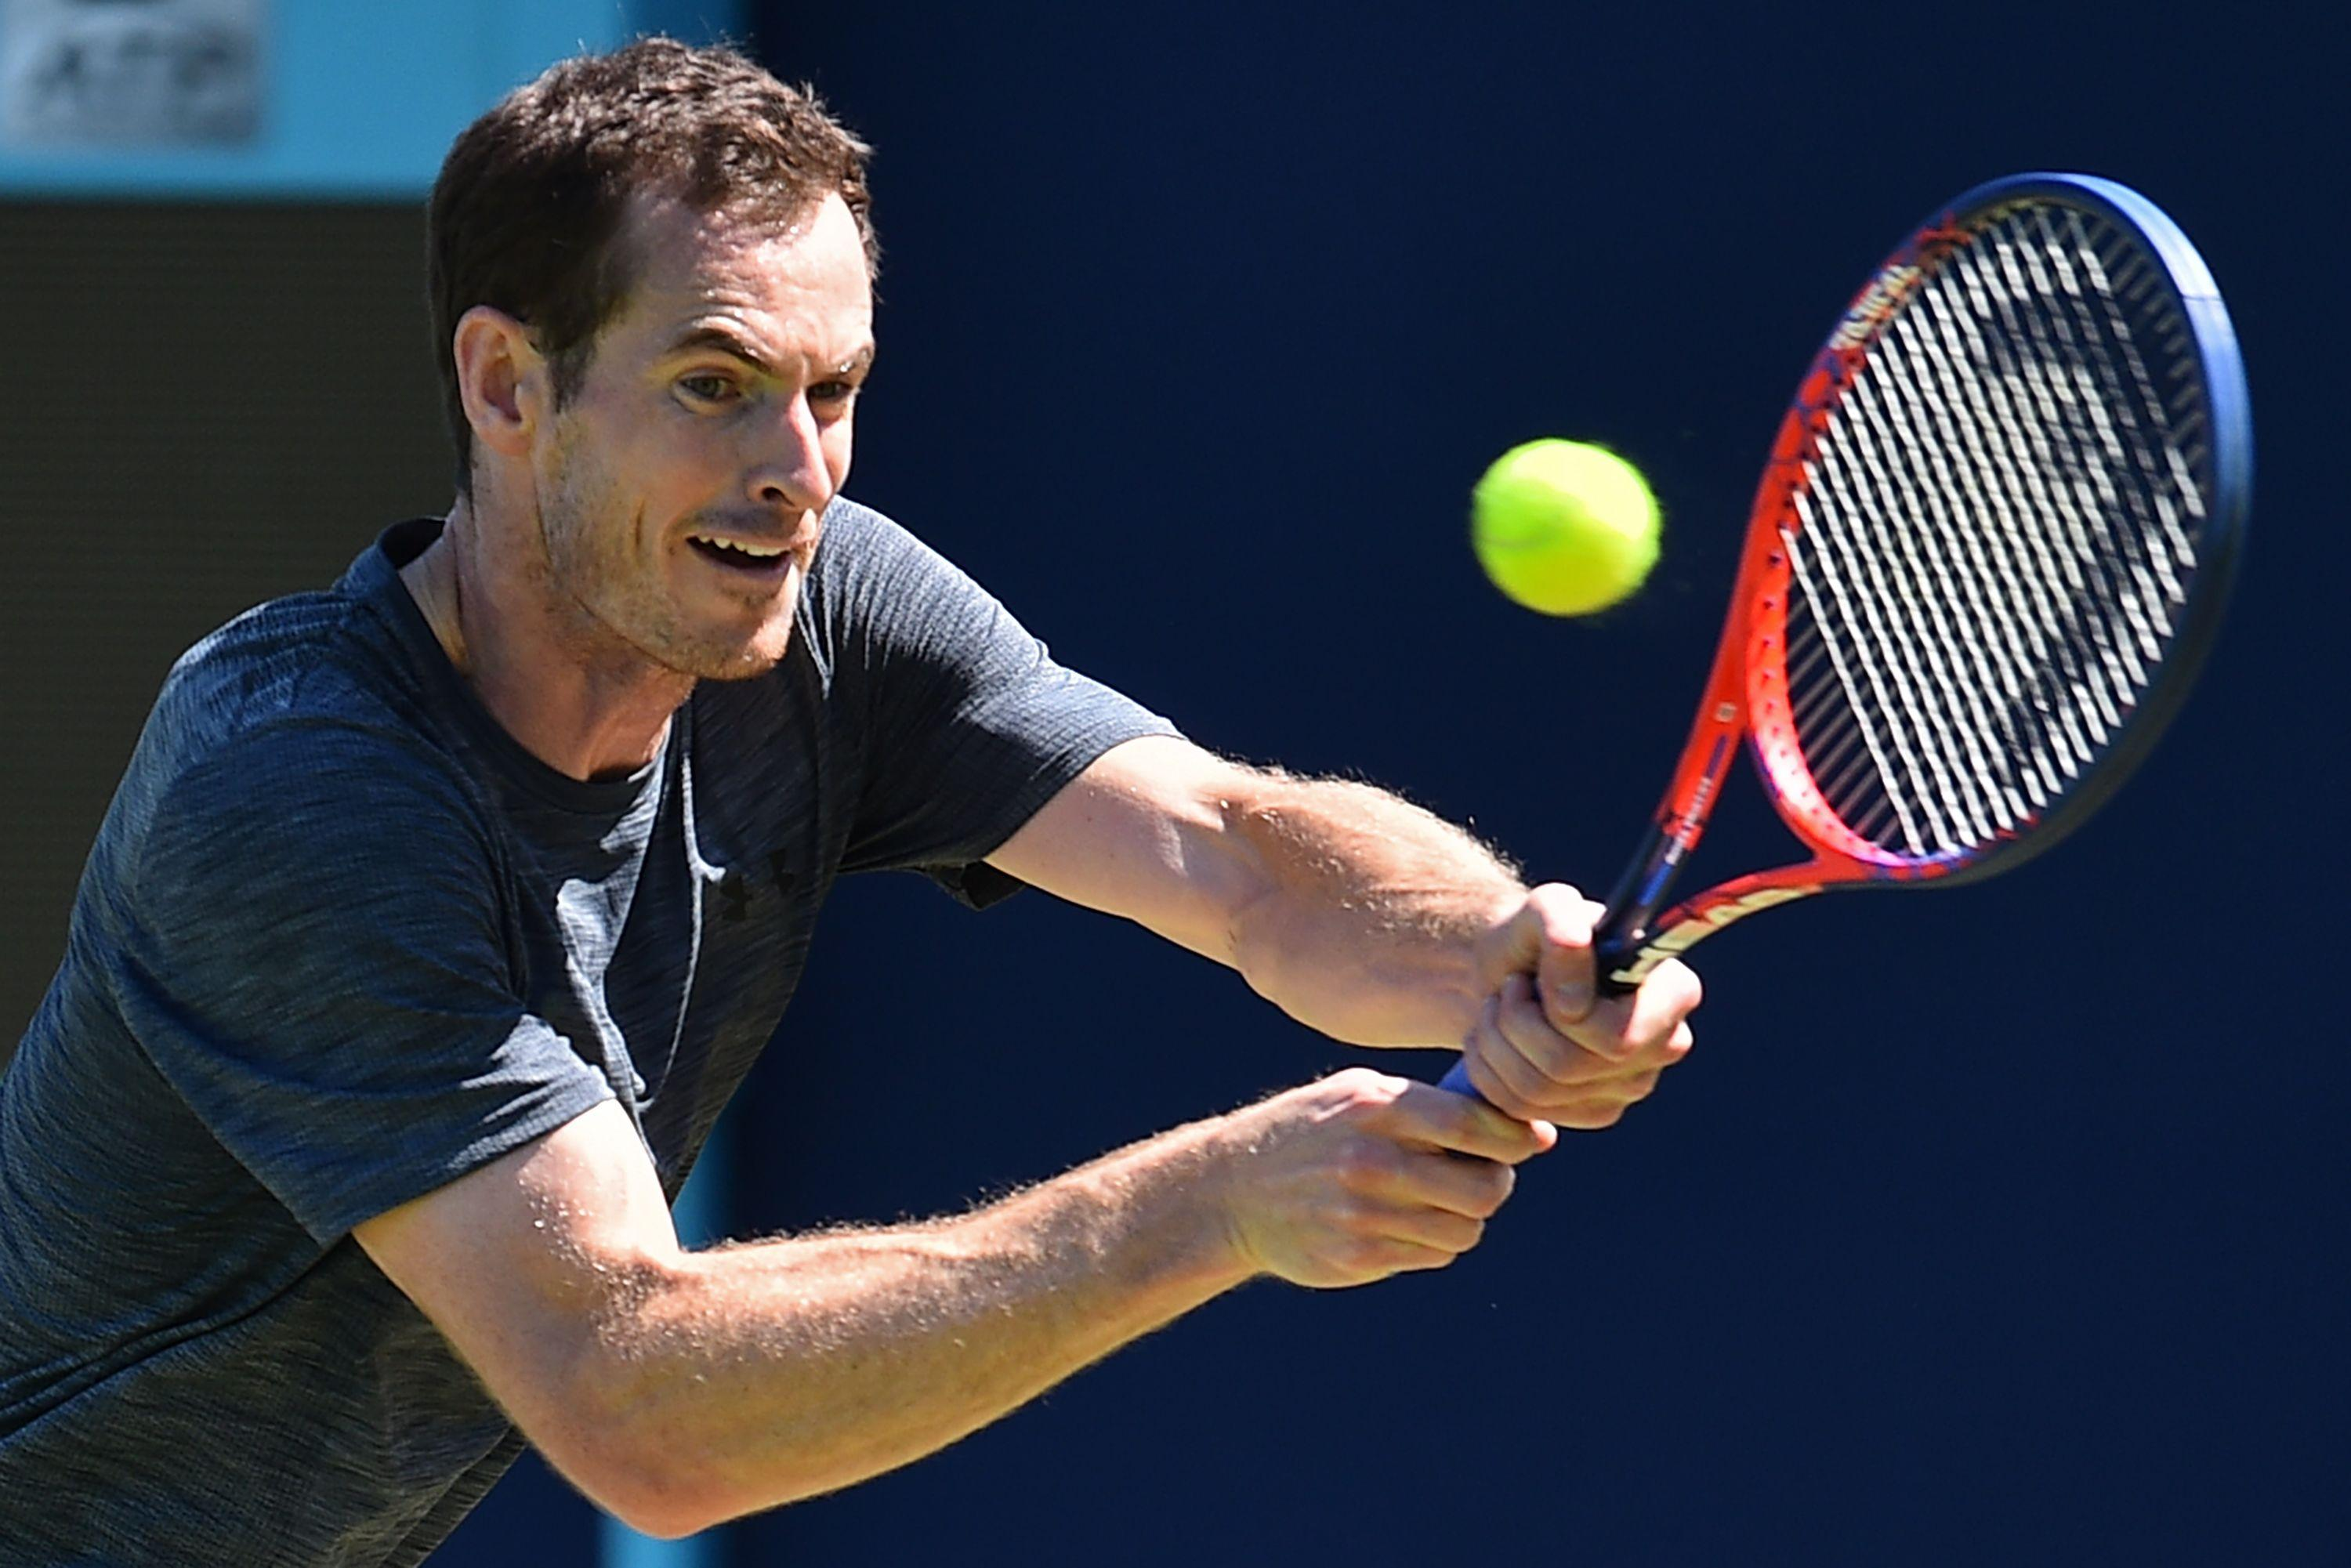 Andy Murray was in action training at Queen's Club on Monday